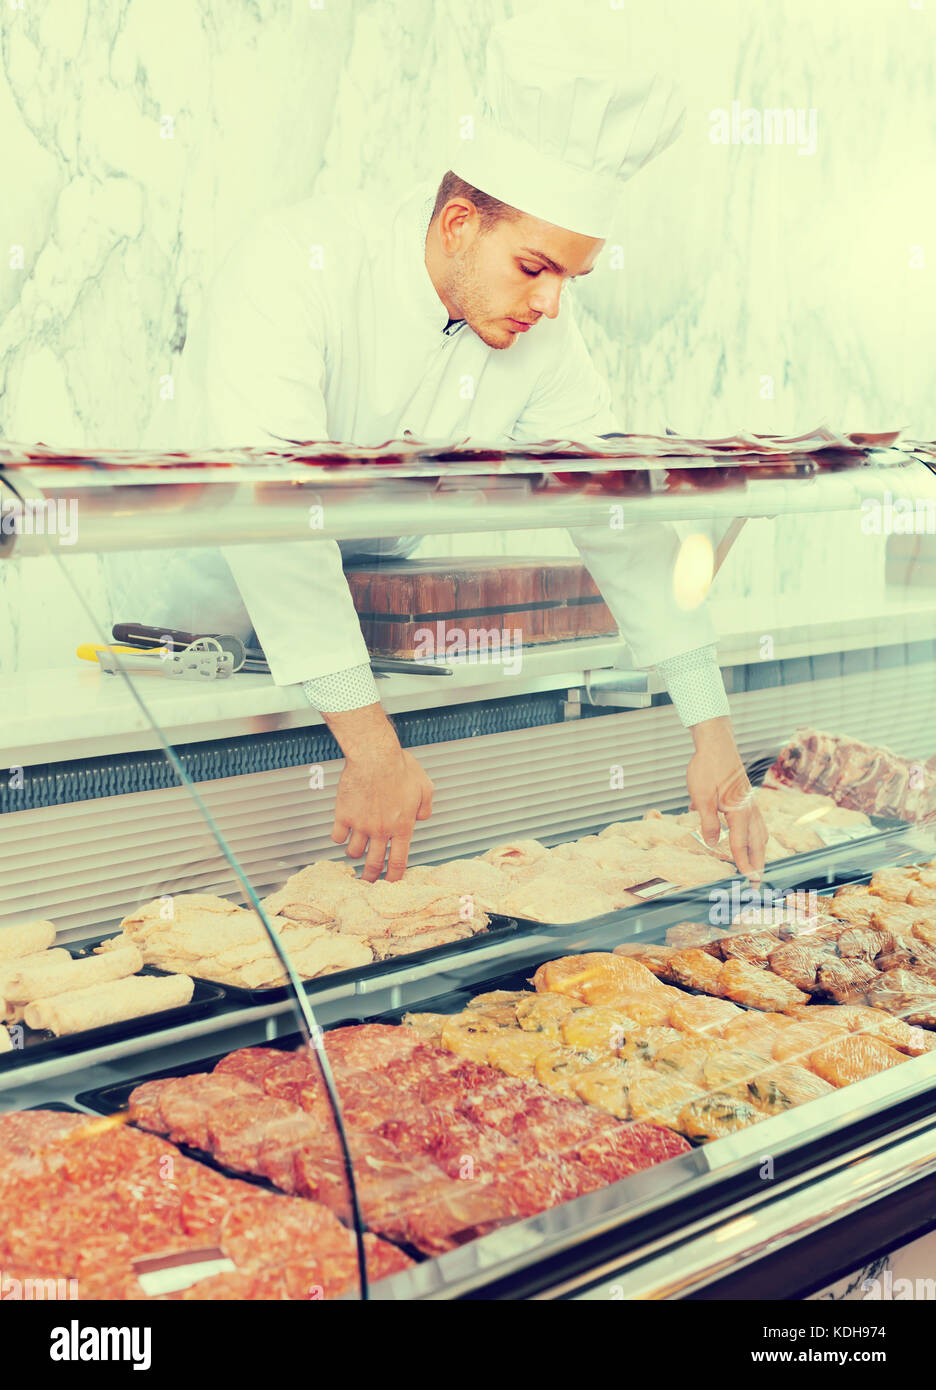 concentrated young seller at butcher store offering fresh products Stock Photo